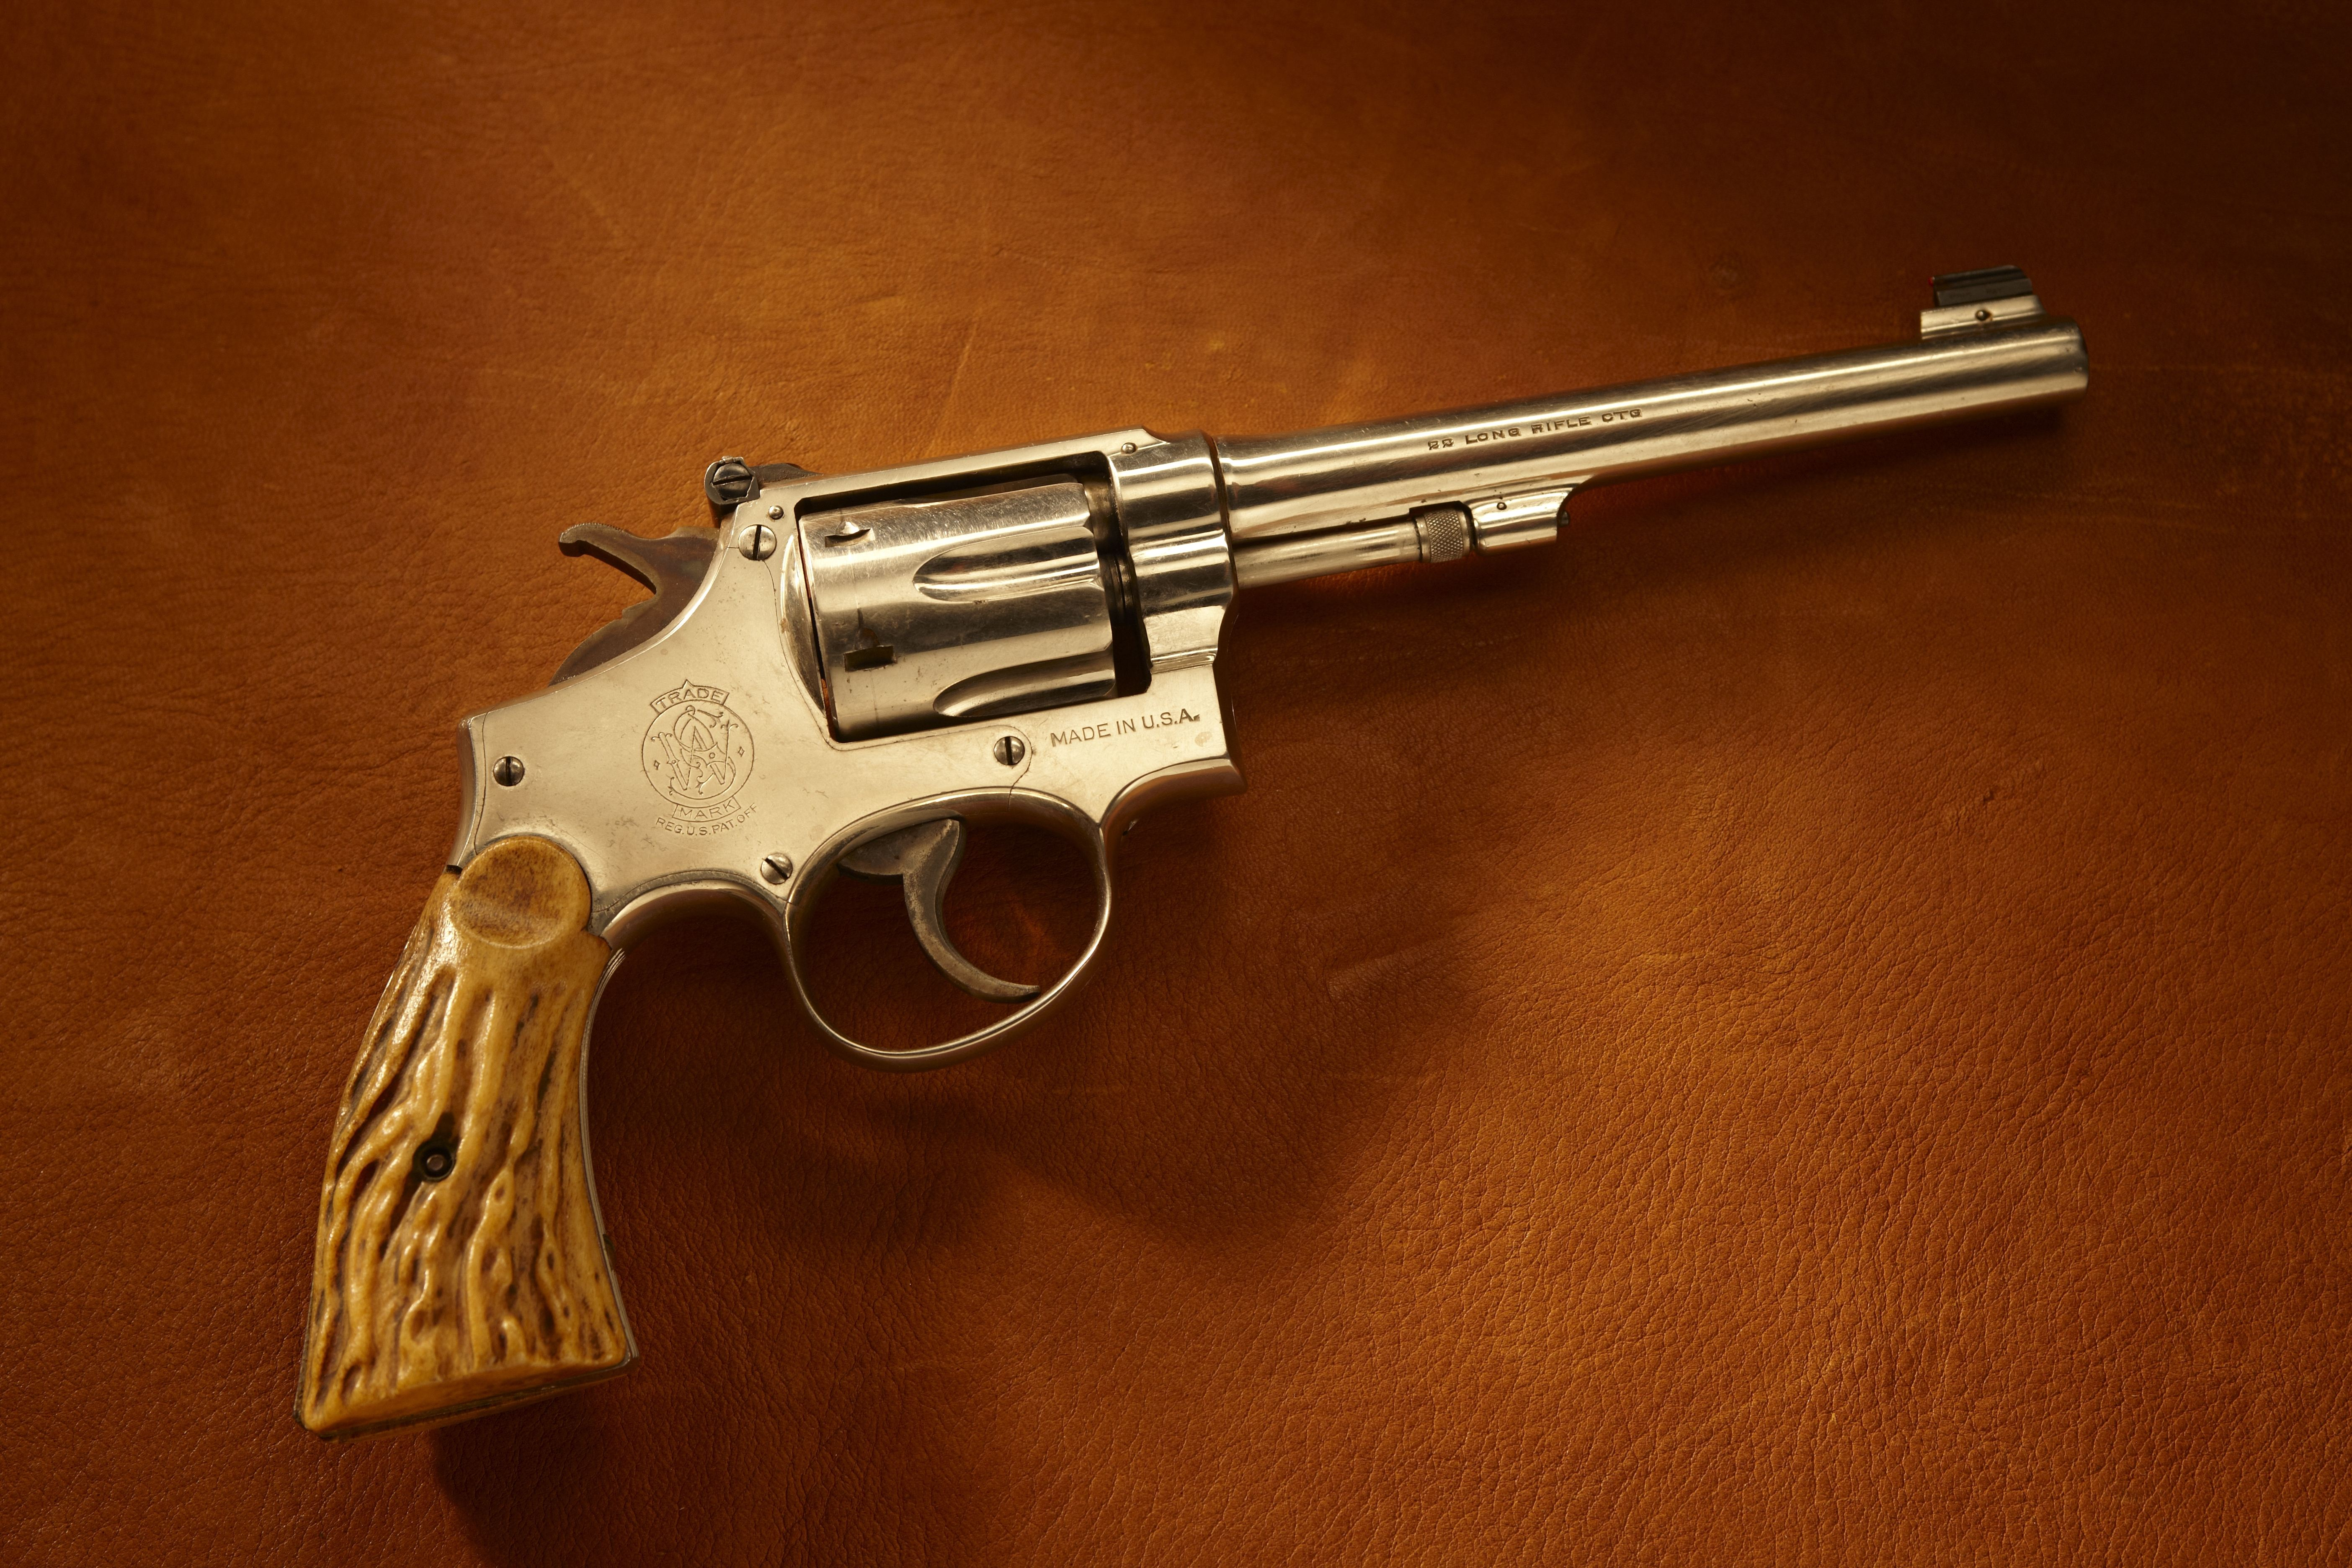 Exhibition Shooter Herb Parsons' Smith & Wesson Revolvers (1 of 2)